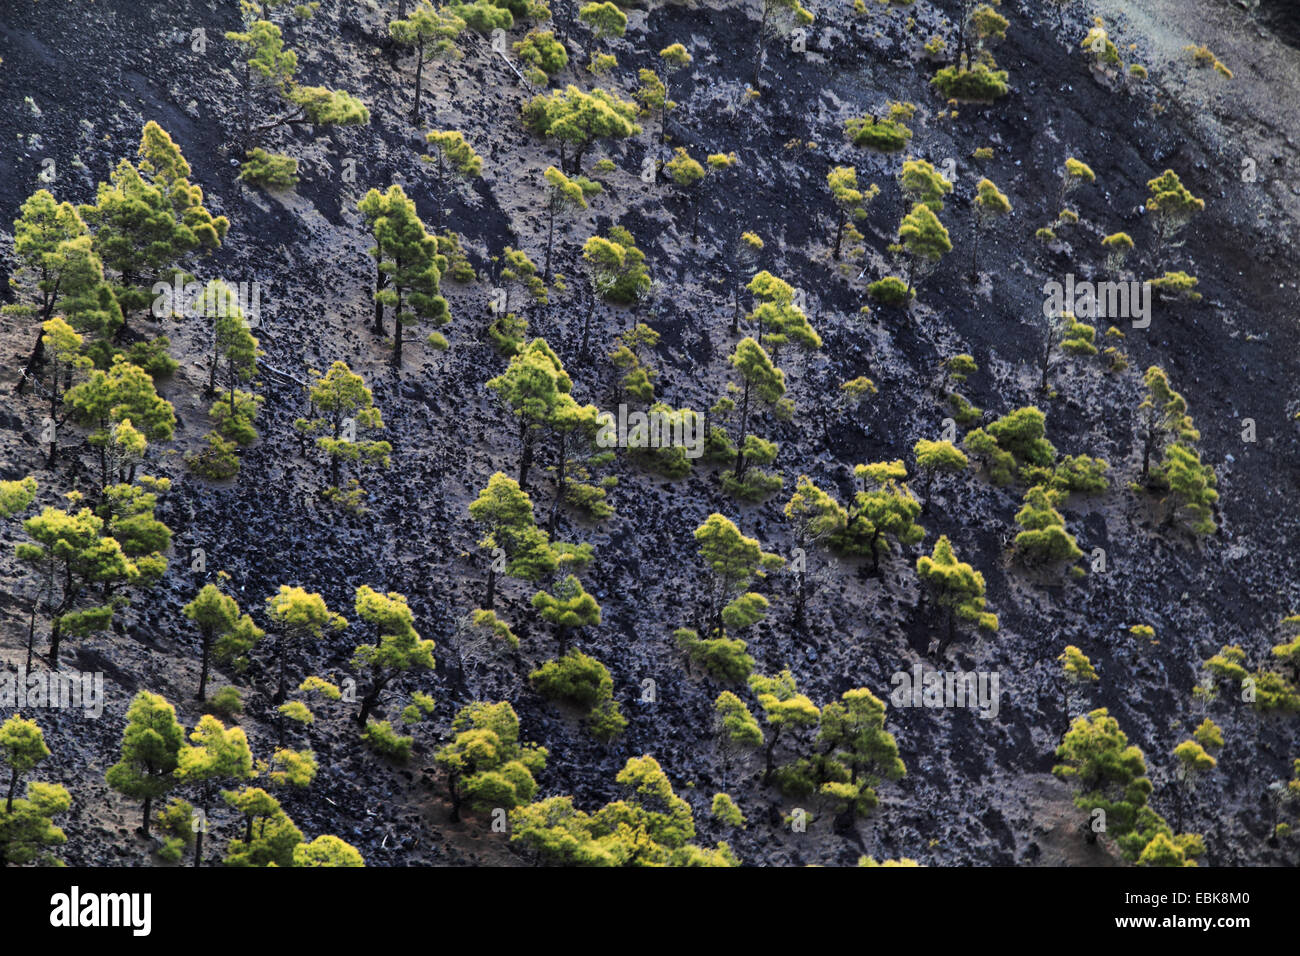 Canary pine (Pinus canariensis), pines growing in the crater, Canary Islands, La Palma, Vulkan San Antonio - Stock Image